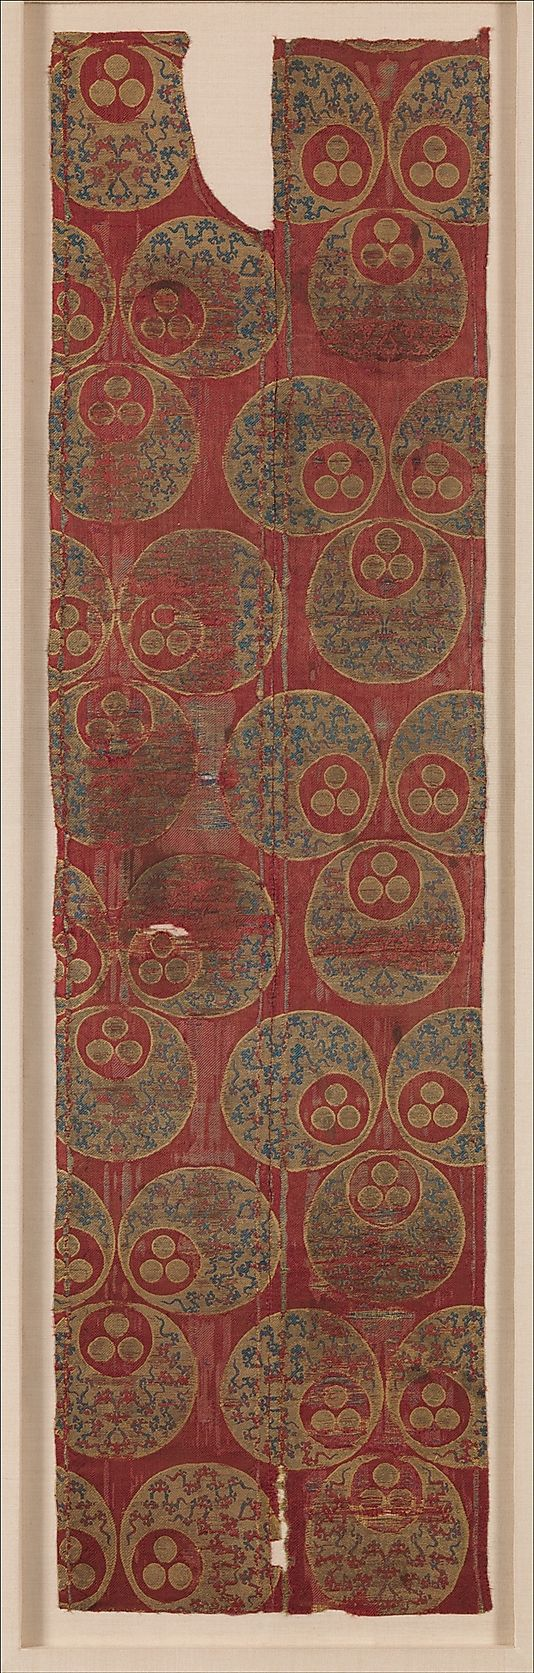 Ottoman 16th century silk textile with Large Chintamani Design. (Metropolitan Museum)